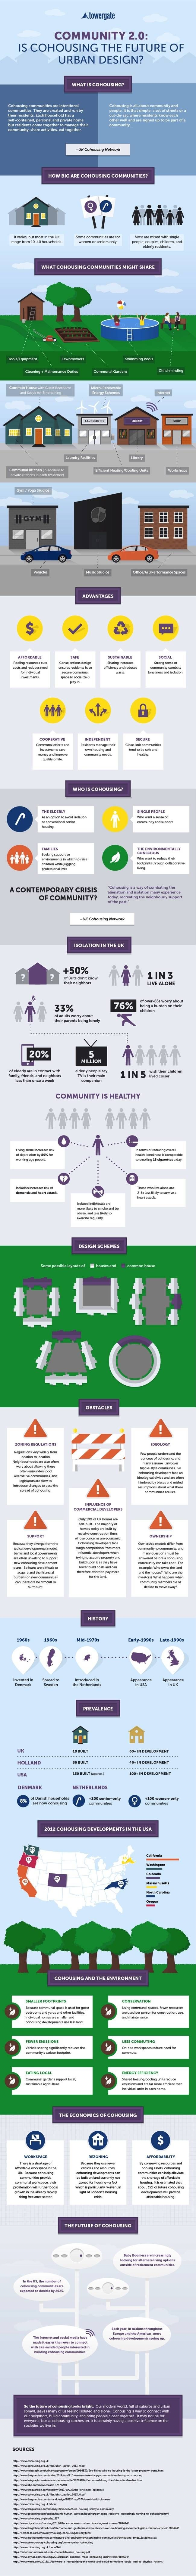 Cohousing: The sharing economy for housing, explained in an infographic : TreeHugger